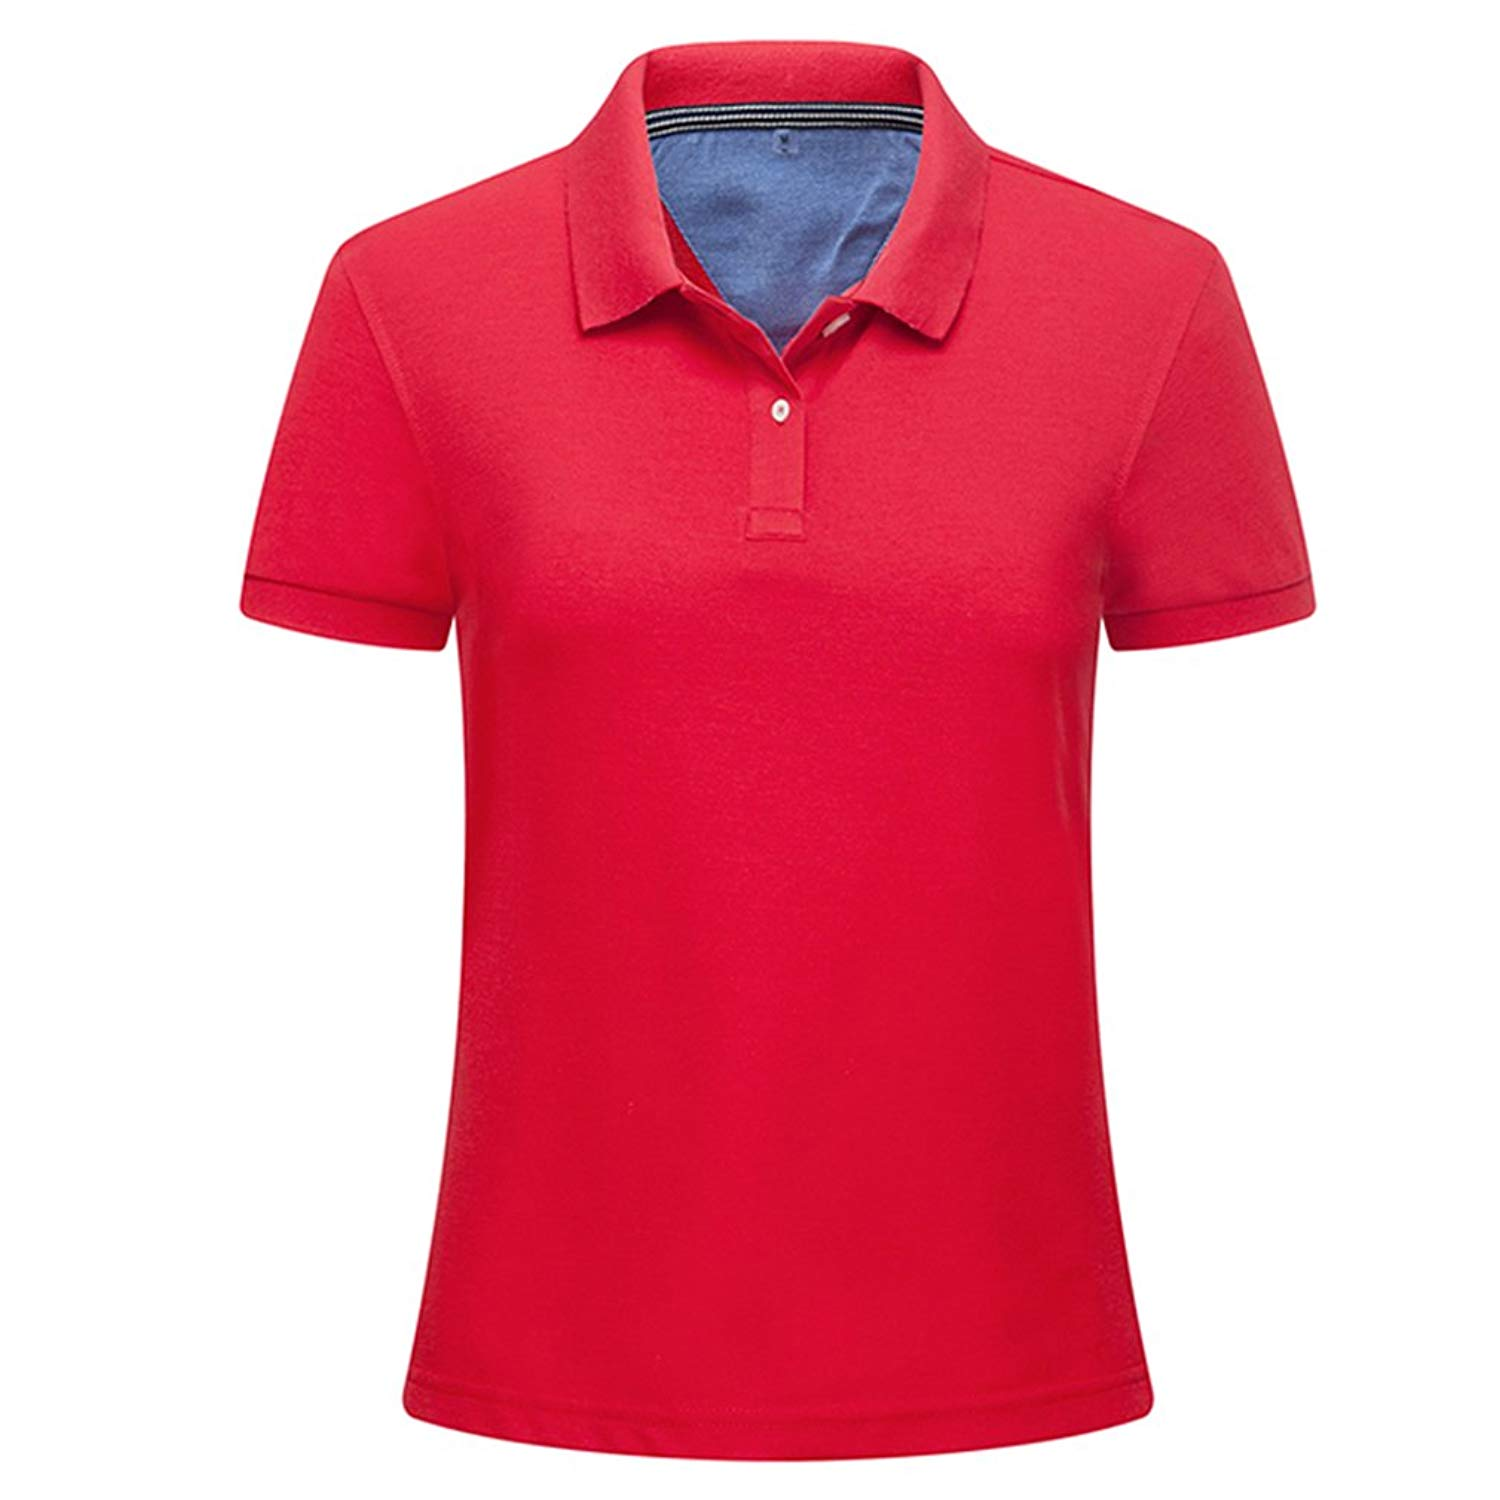 mansmoer Women's Outdoor Golf Polo T-Shirts Lady Breathable Wicking Fitness Tops